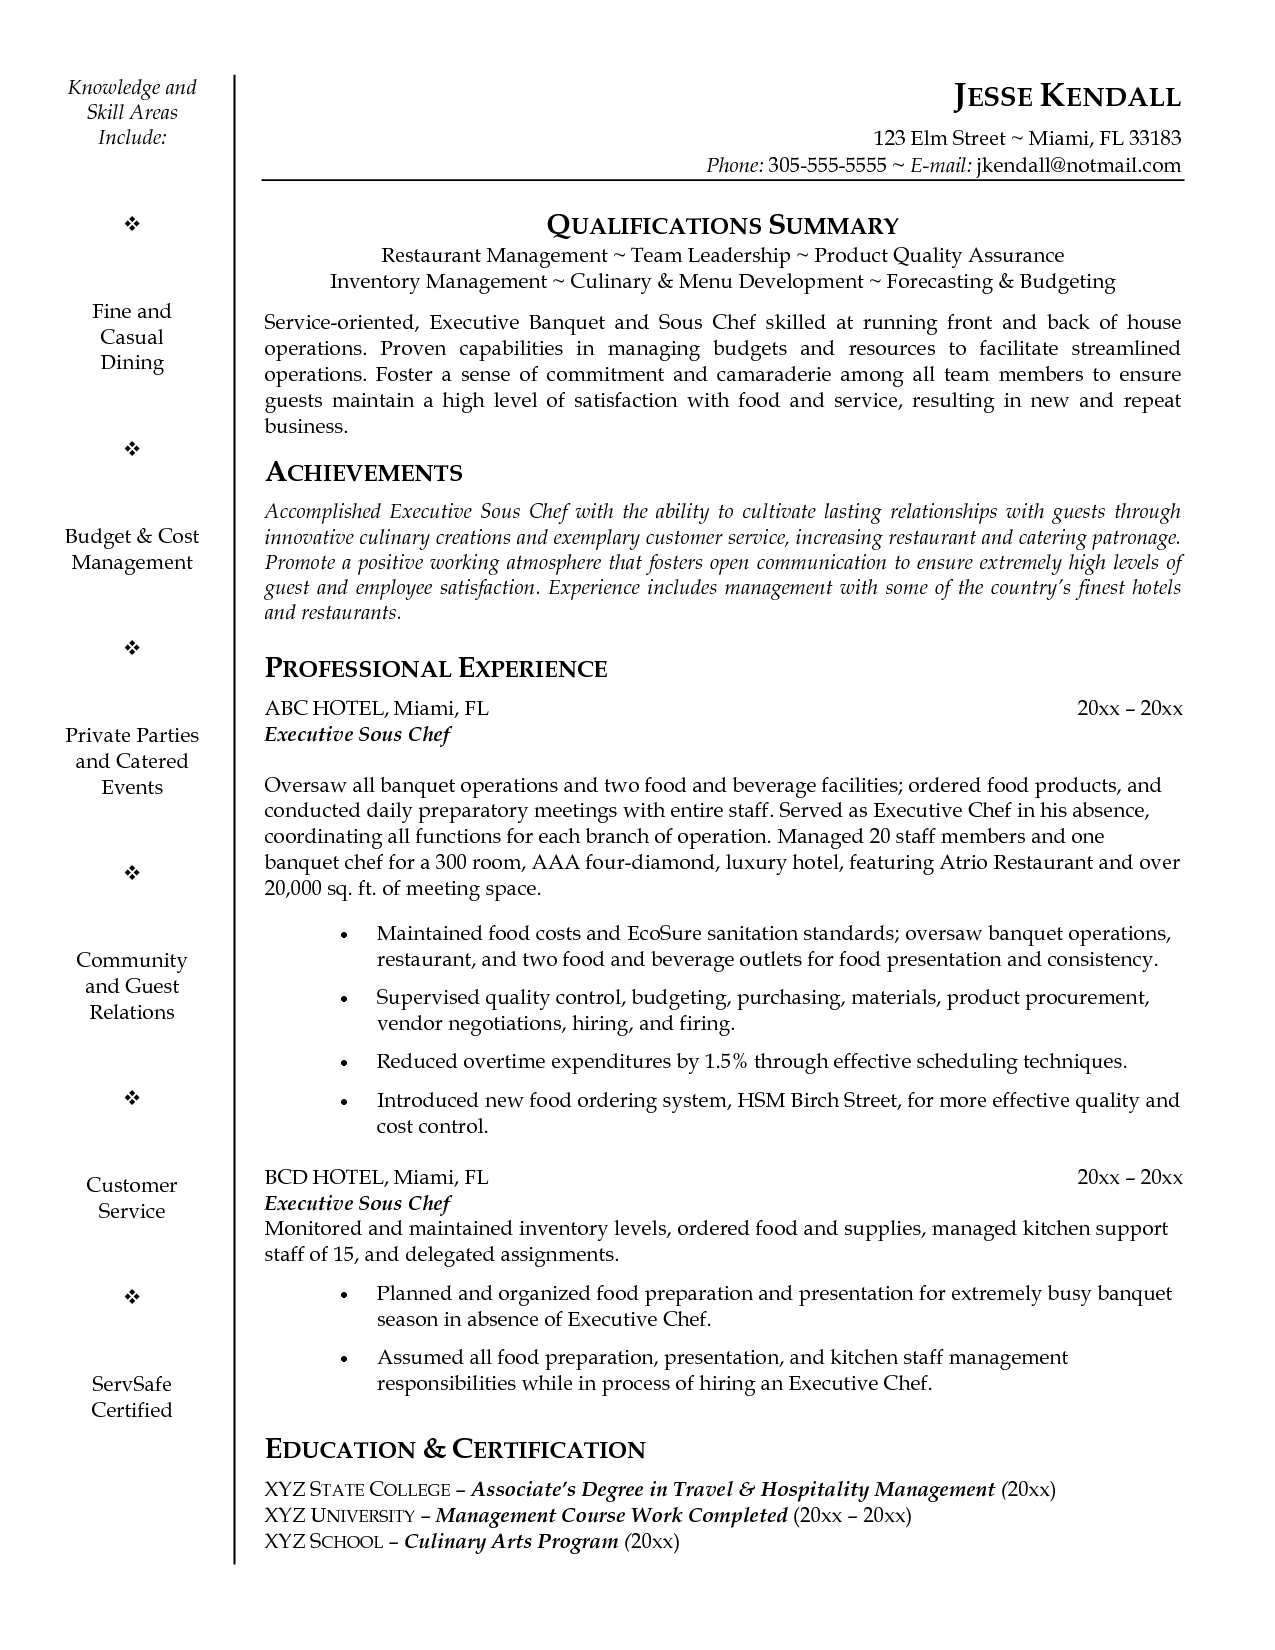 Sous Chef Resume Examples - http://www.jobresume.website/sous-chef ...